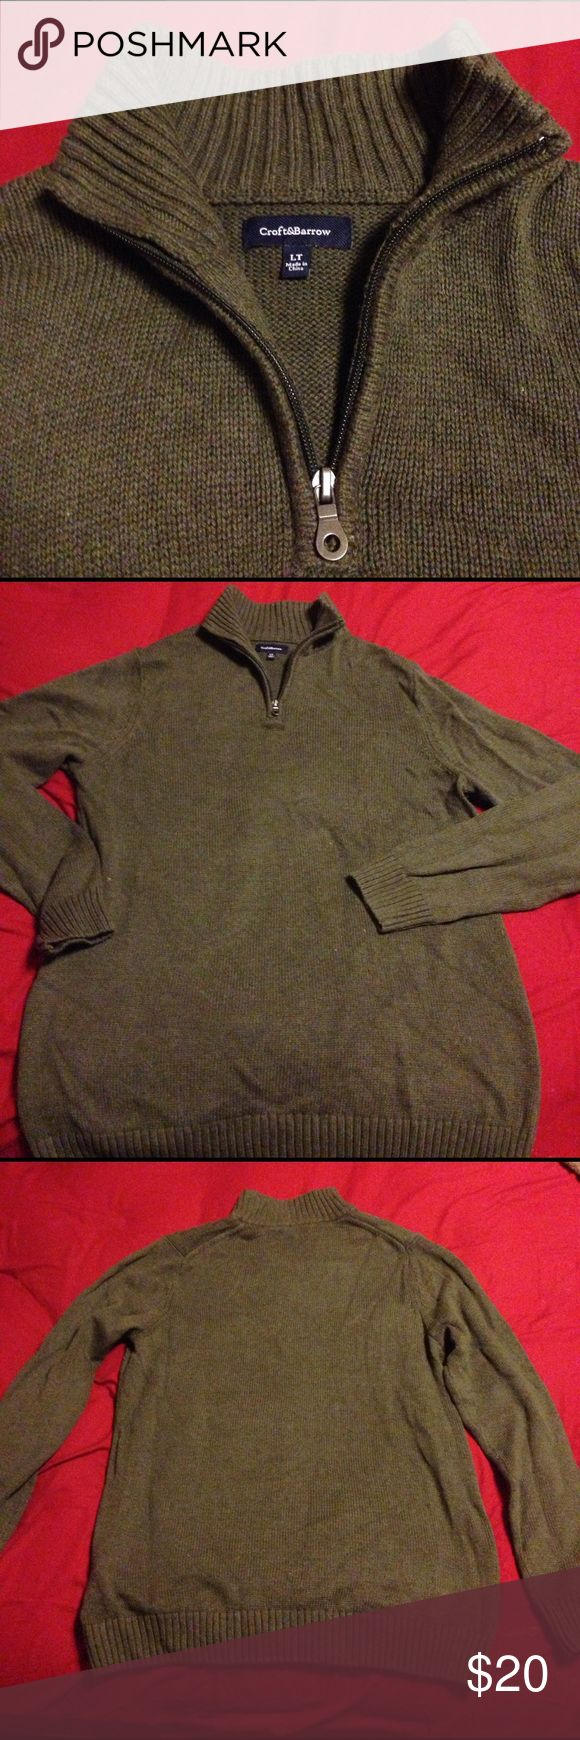 Croft&Barrow Olive green formal/ casual sweater Only worn once , Size large, Olive green sweater with 1/2 neck zipper. Can be worn for a formal event or a casual holiday croft & barrow Sweaters Zip Up